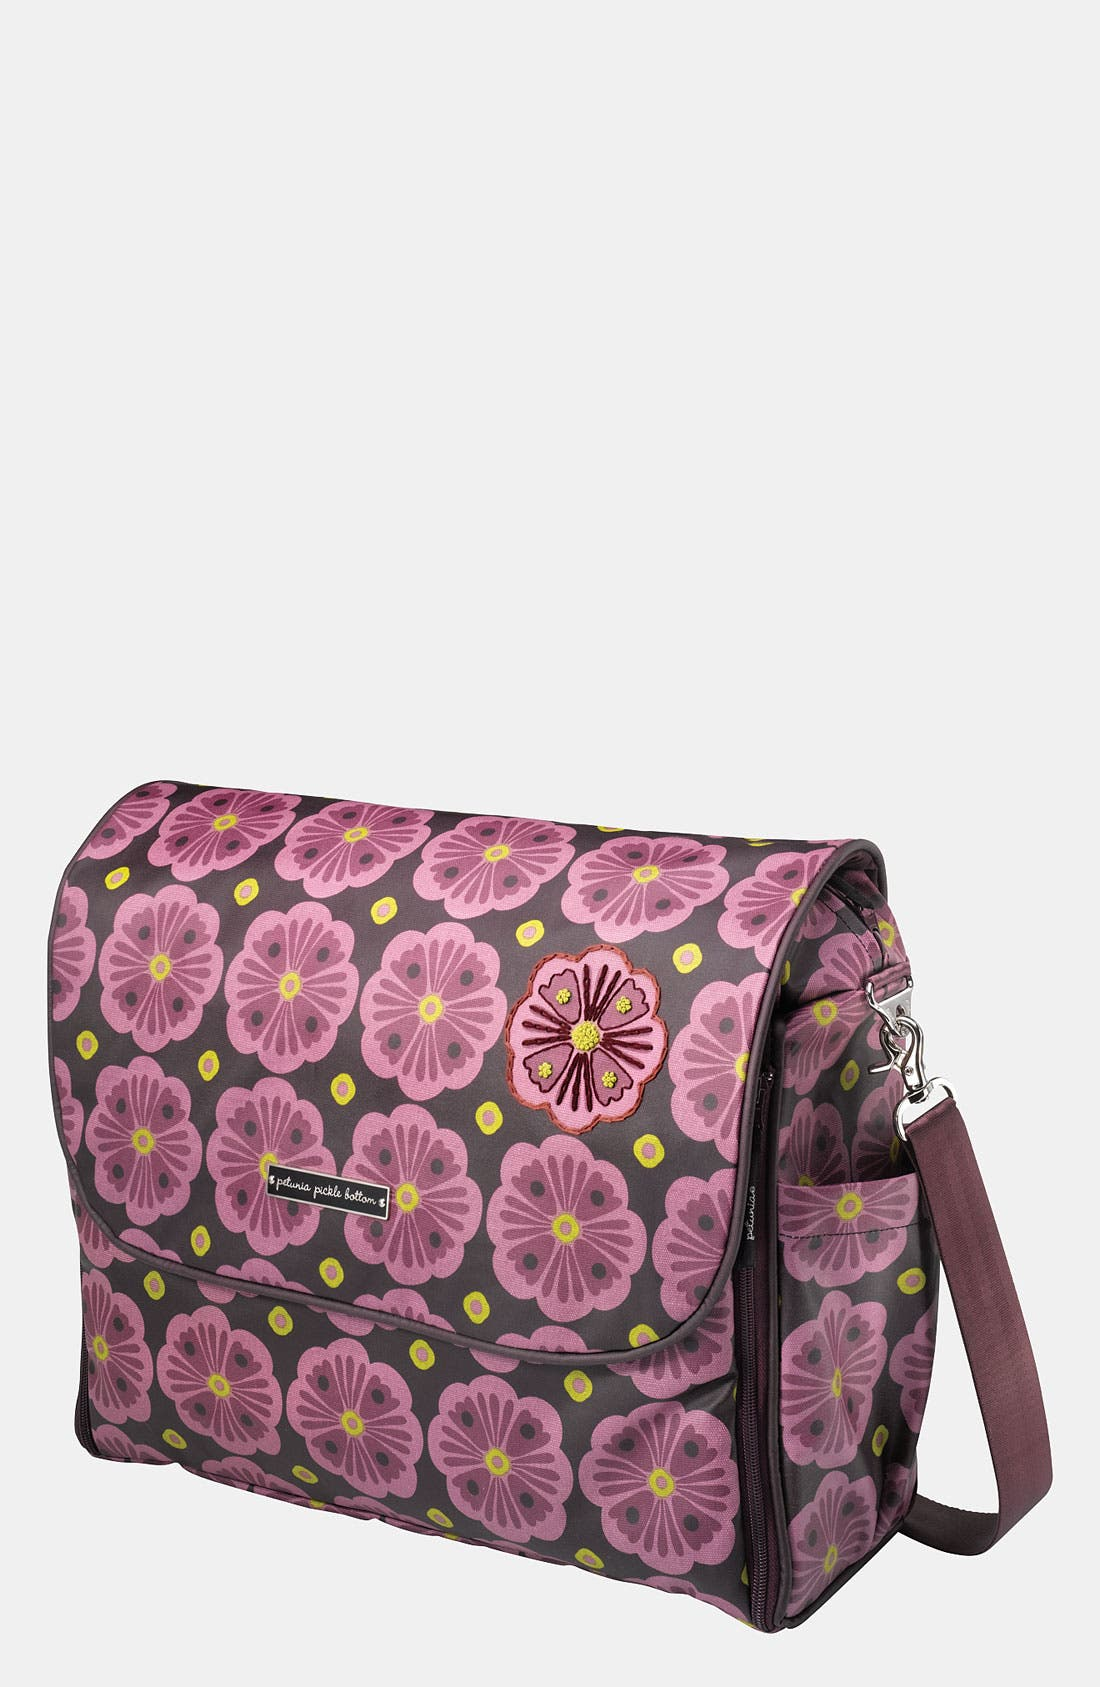 Alternate Image 1 Selected - Petunia Pickle Bottom 'Abundance Boxy' Magnetic Closure Diaper Bag